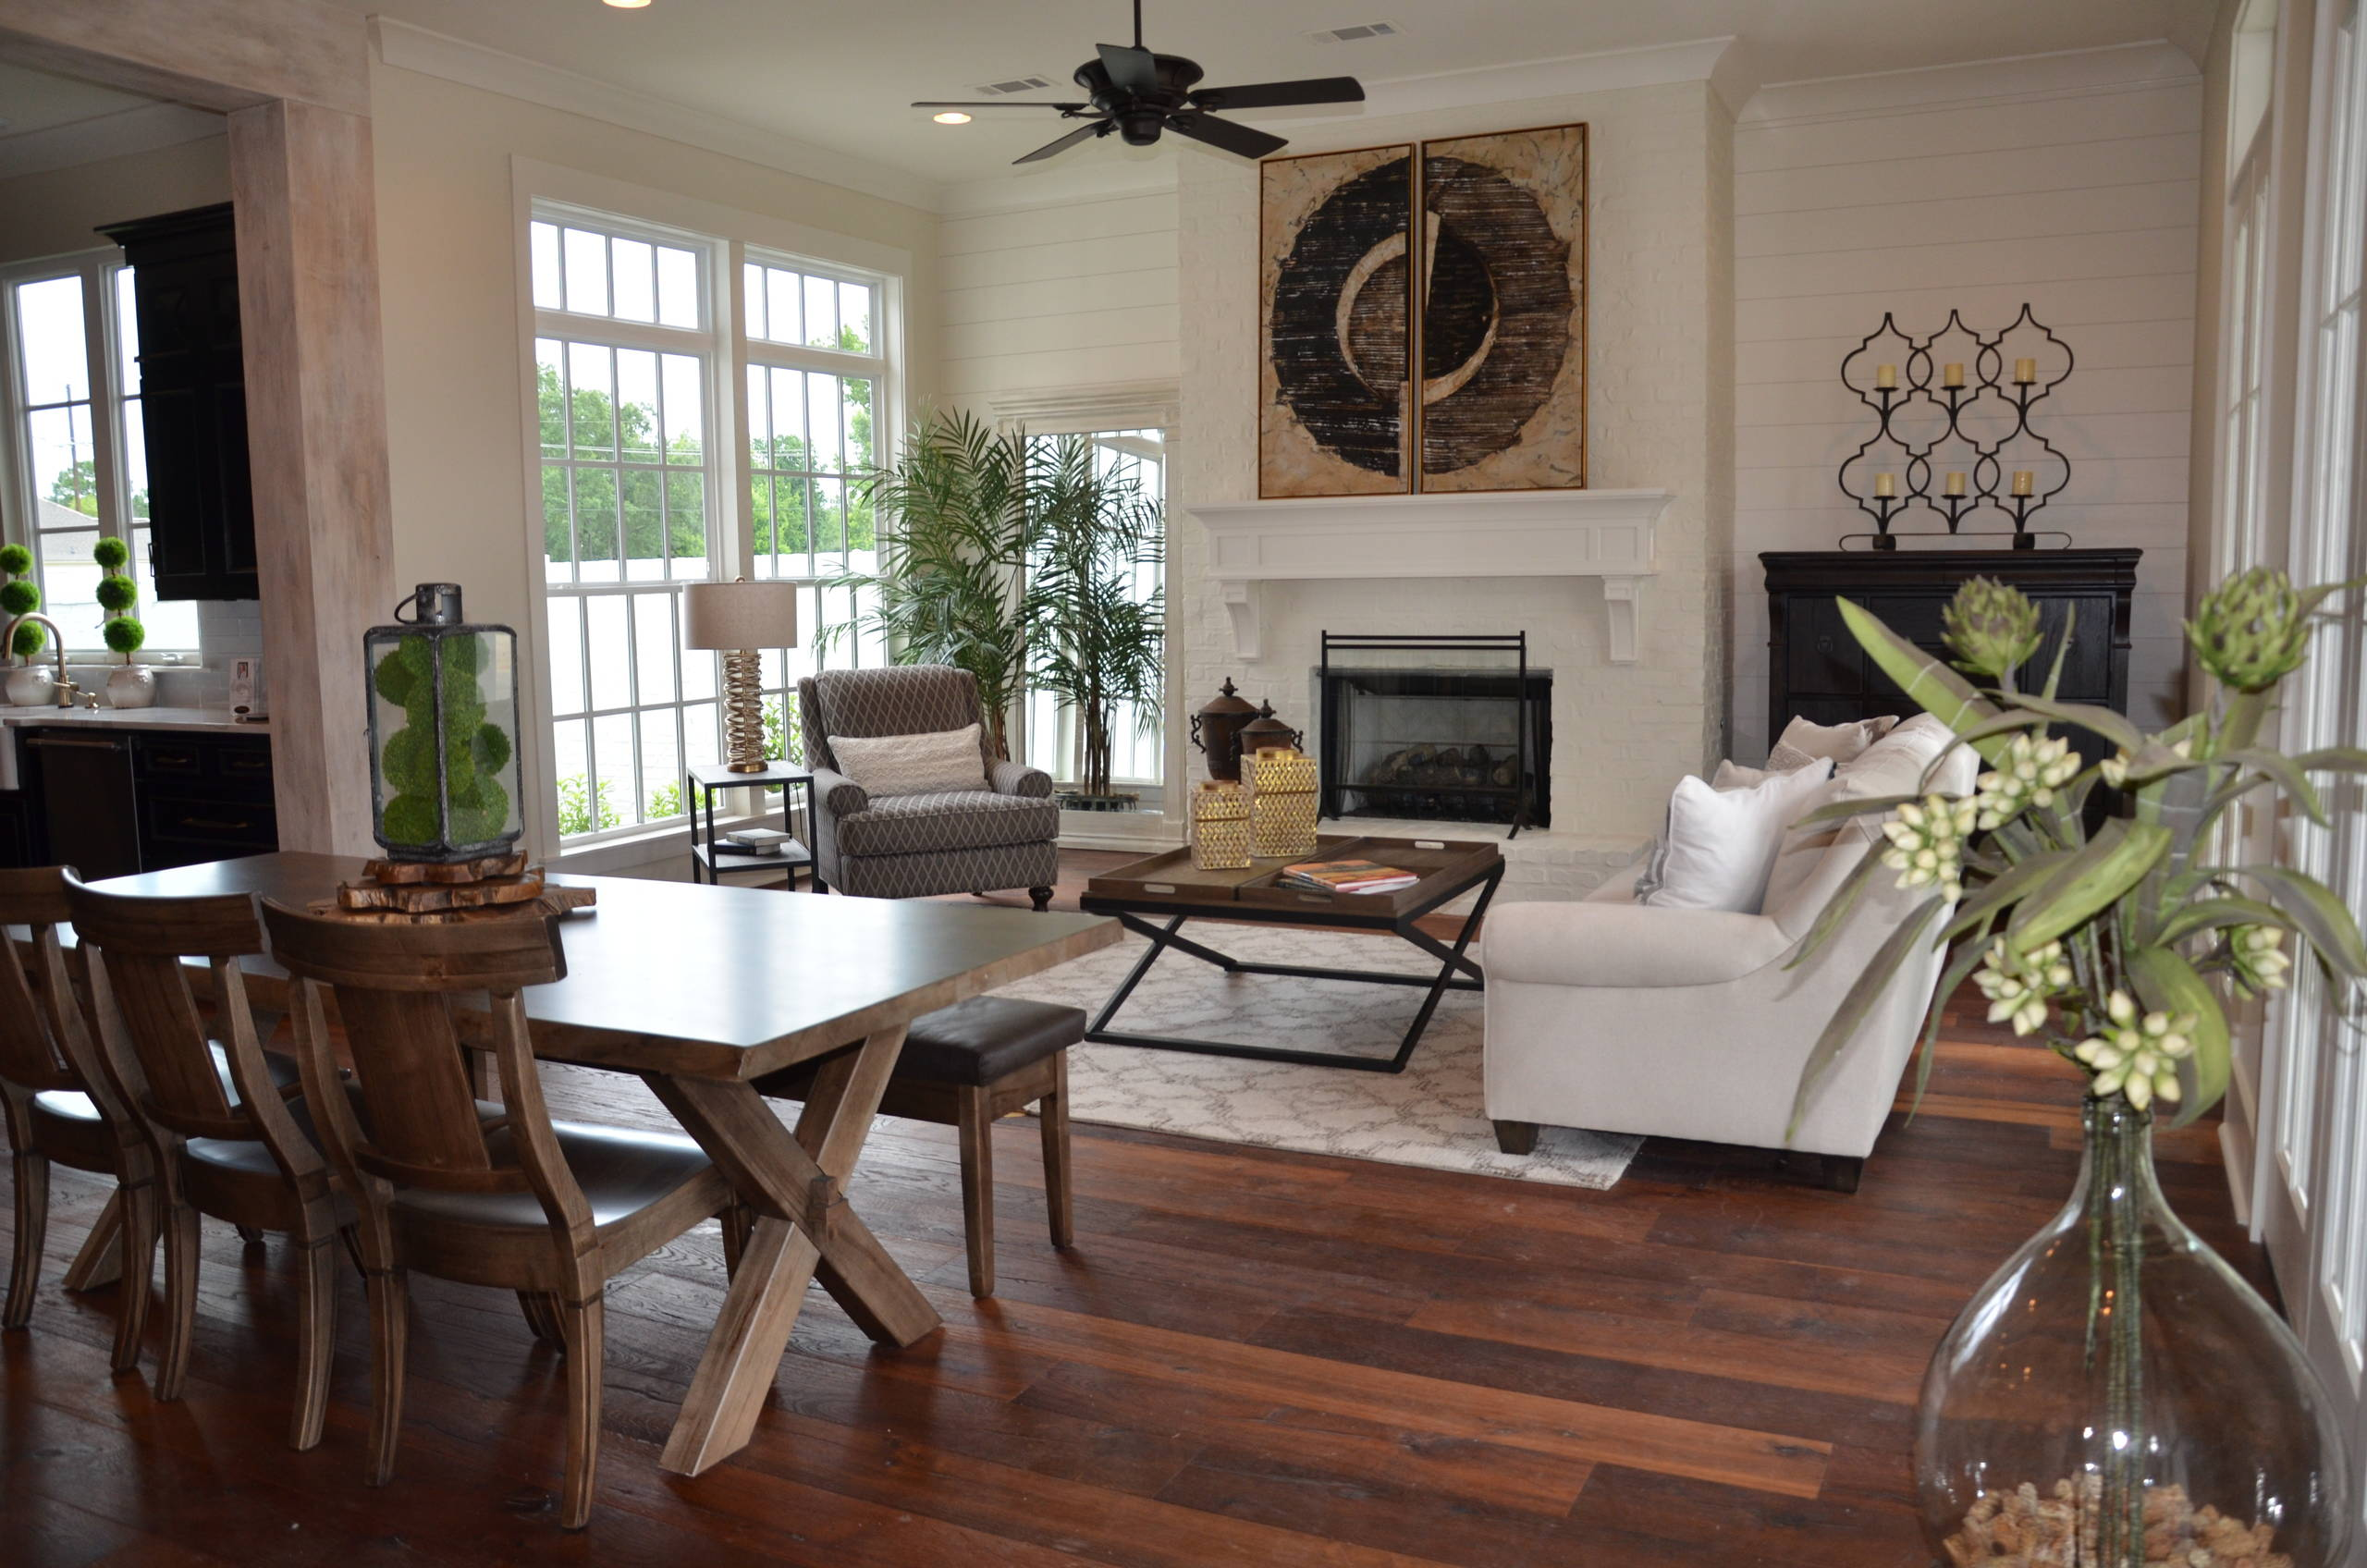 Rosemary Beach inspired home